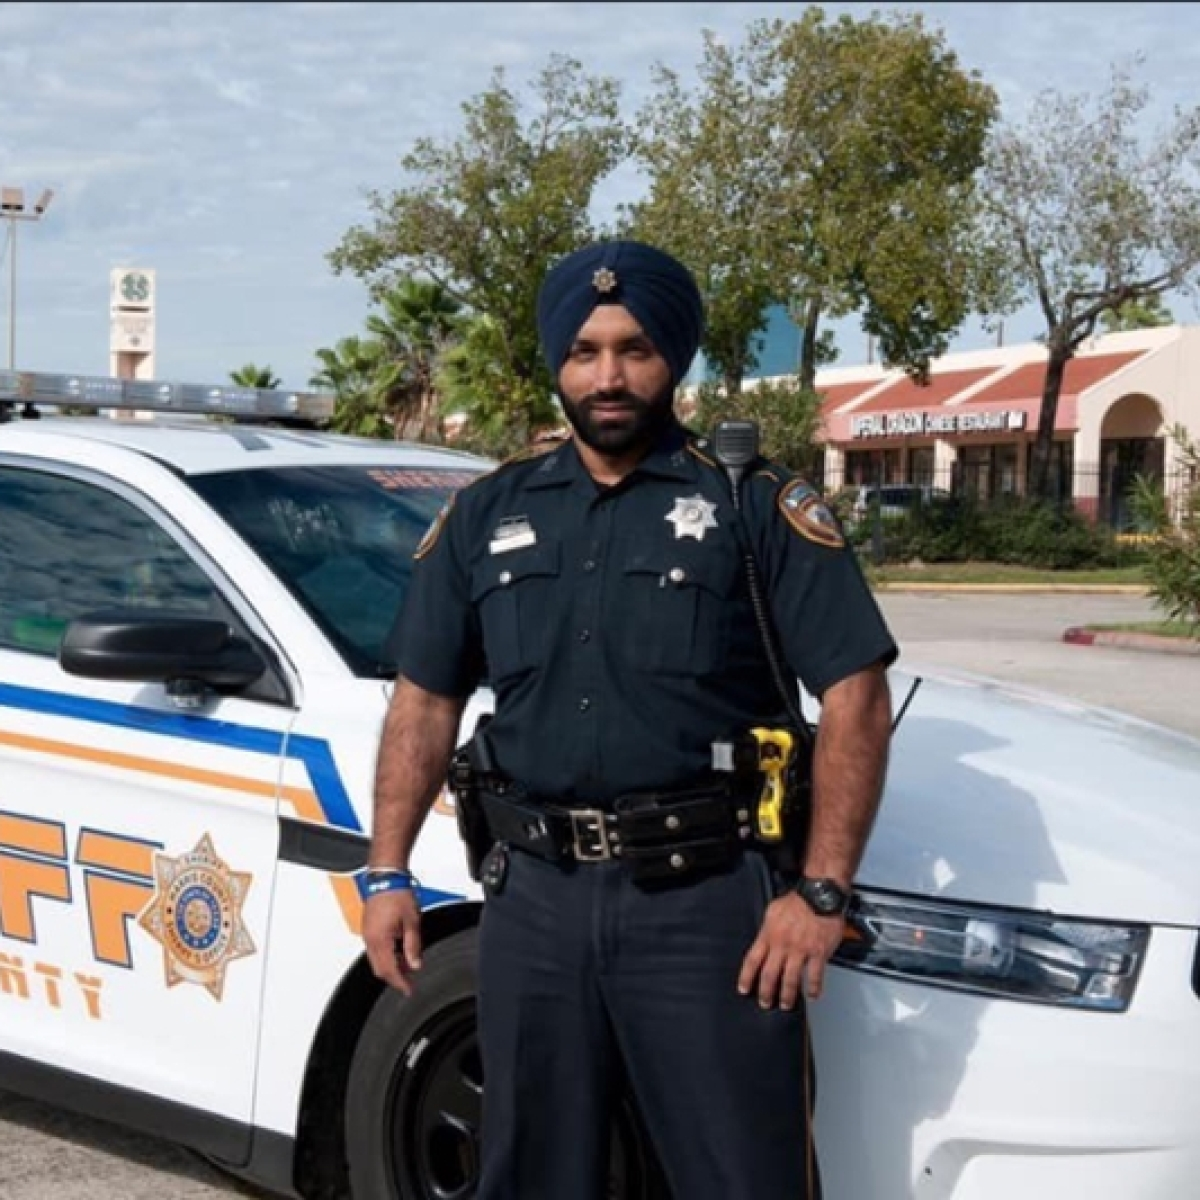 Resolution introduced in US Congress to honour slain Indian-American police officer Sandeep Singh Dhaliwal